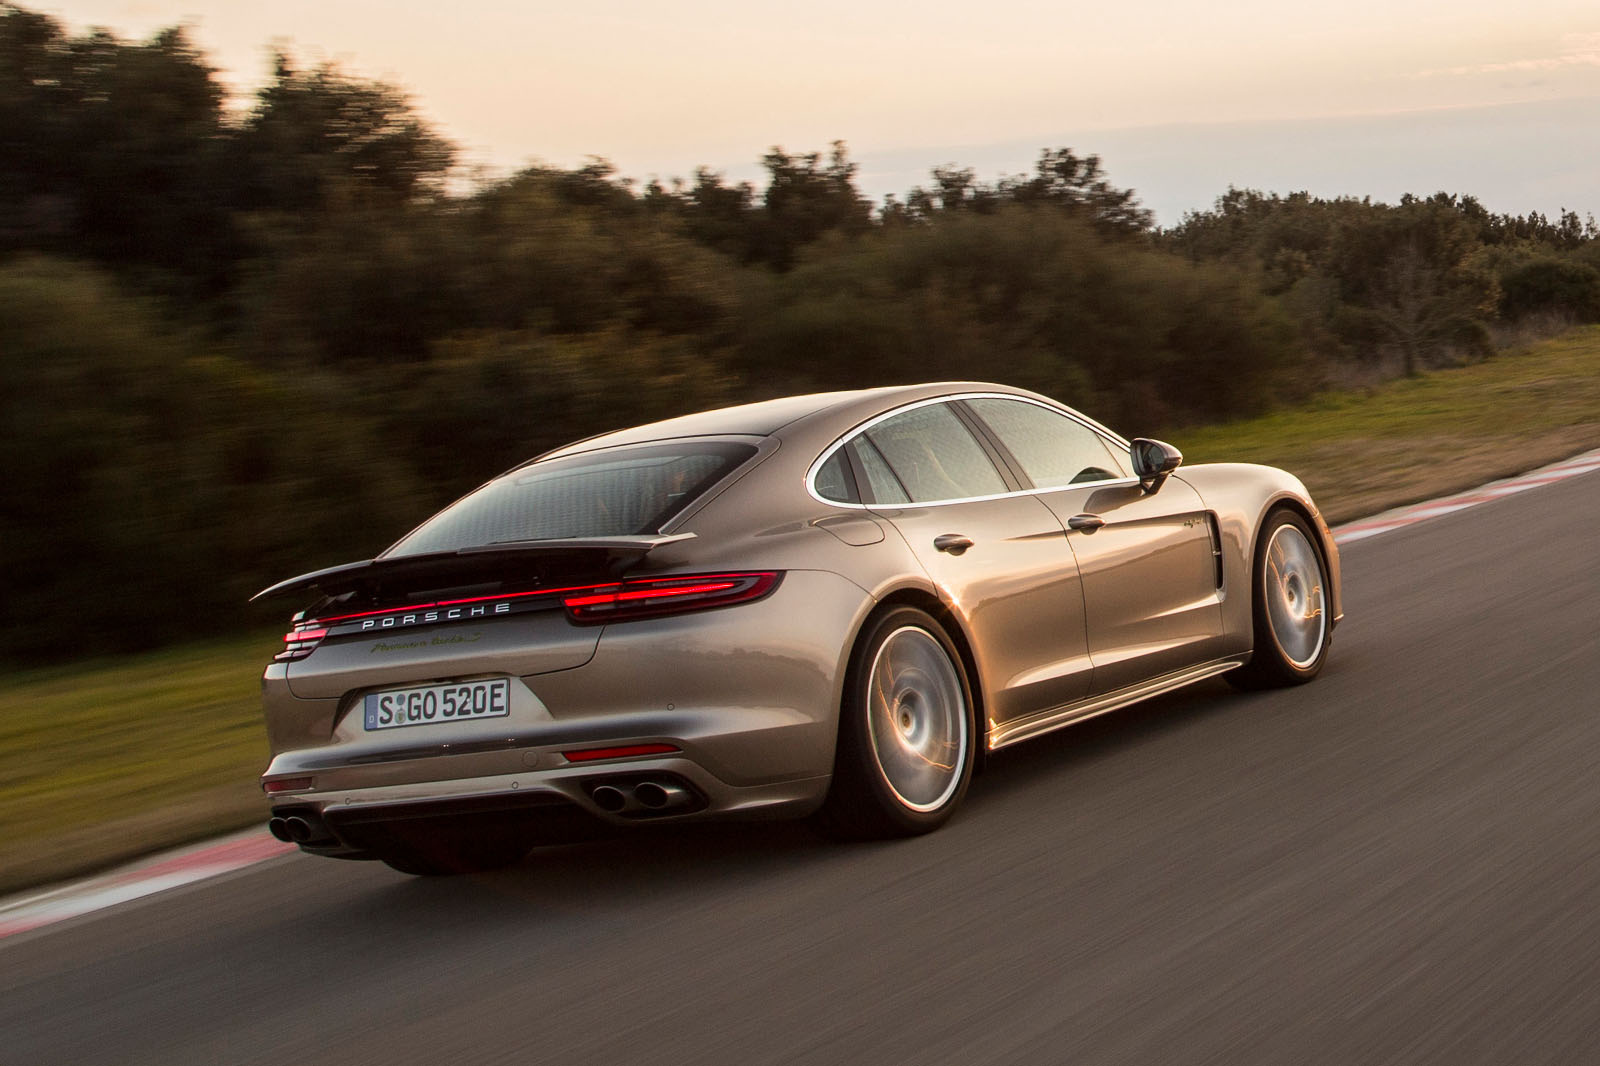 2017 porsche panamera turbo s e hybrid revealed autocar. Black Bedroom Furniture Sets. Home Design Ideas